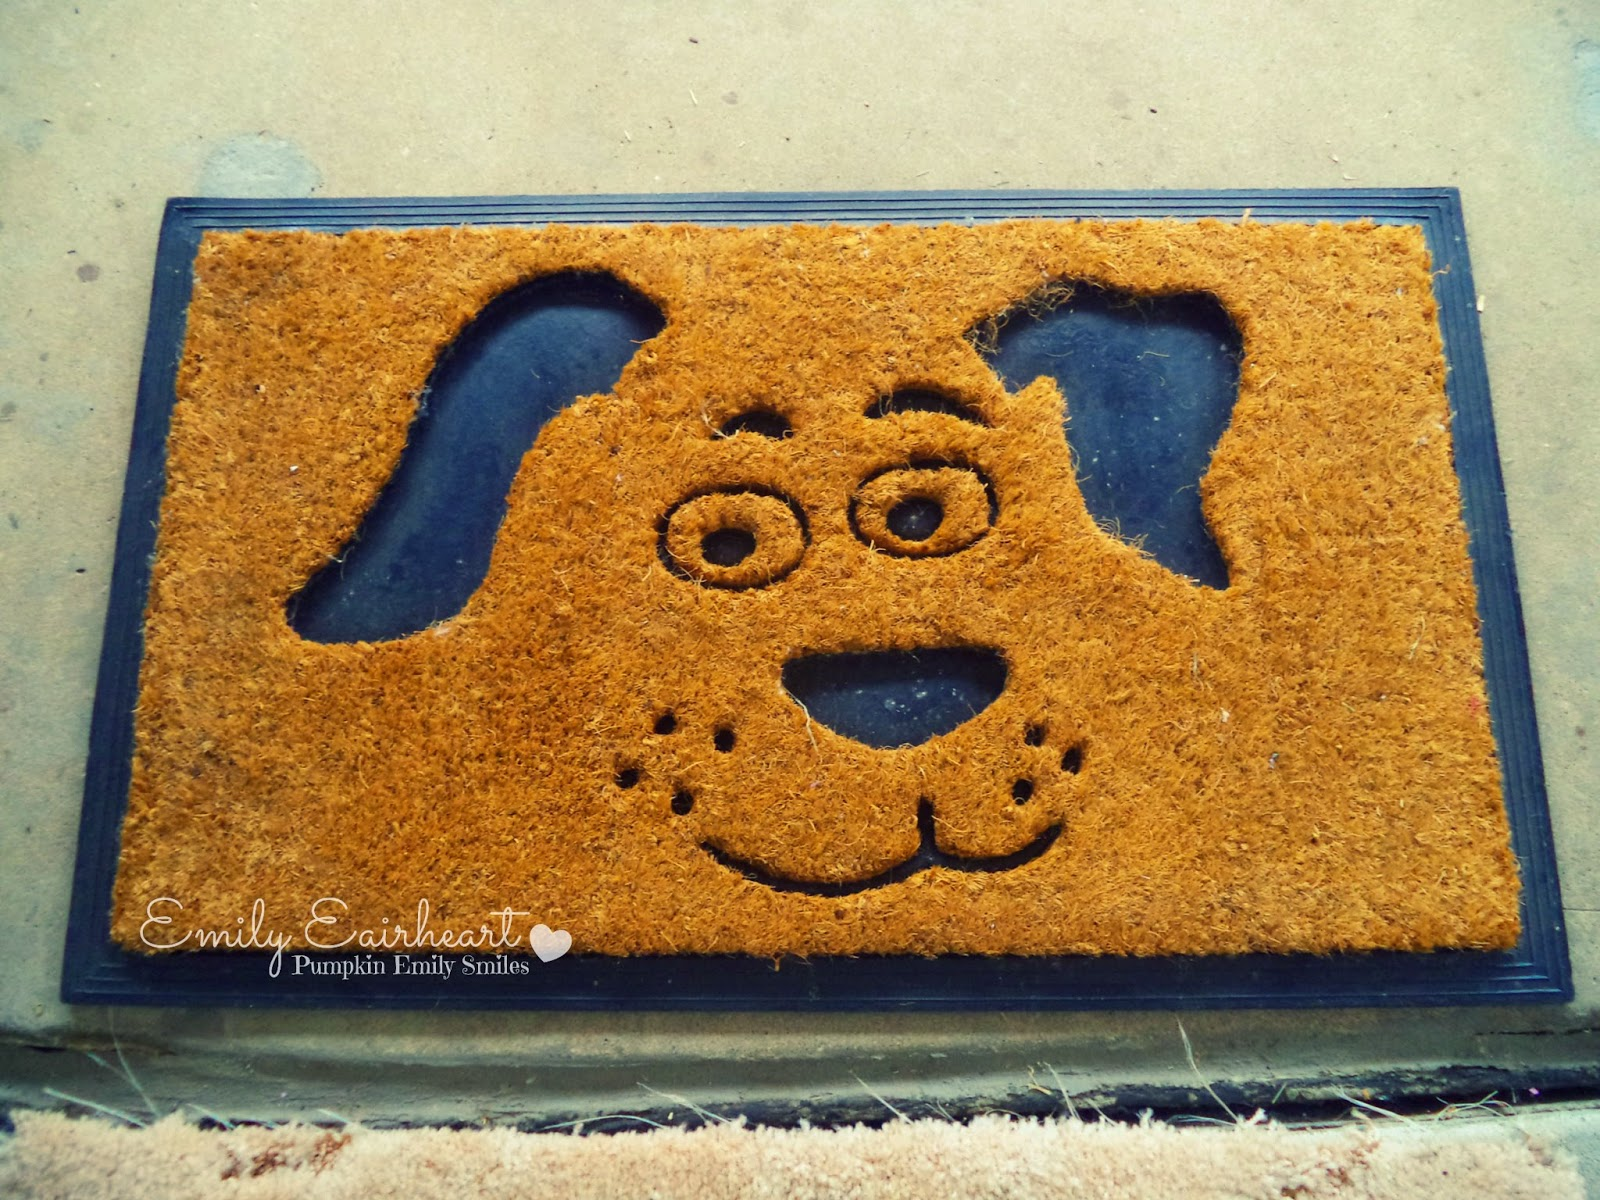 Door mat with a dog face on it.